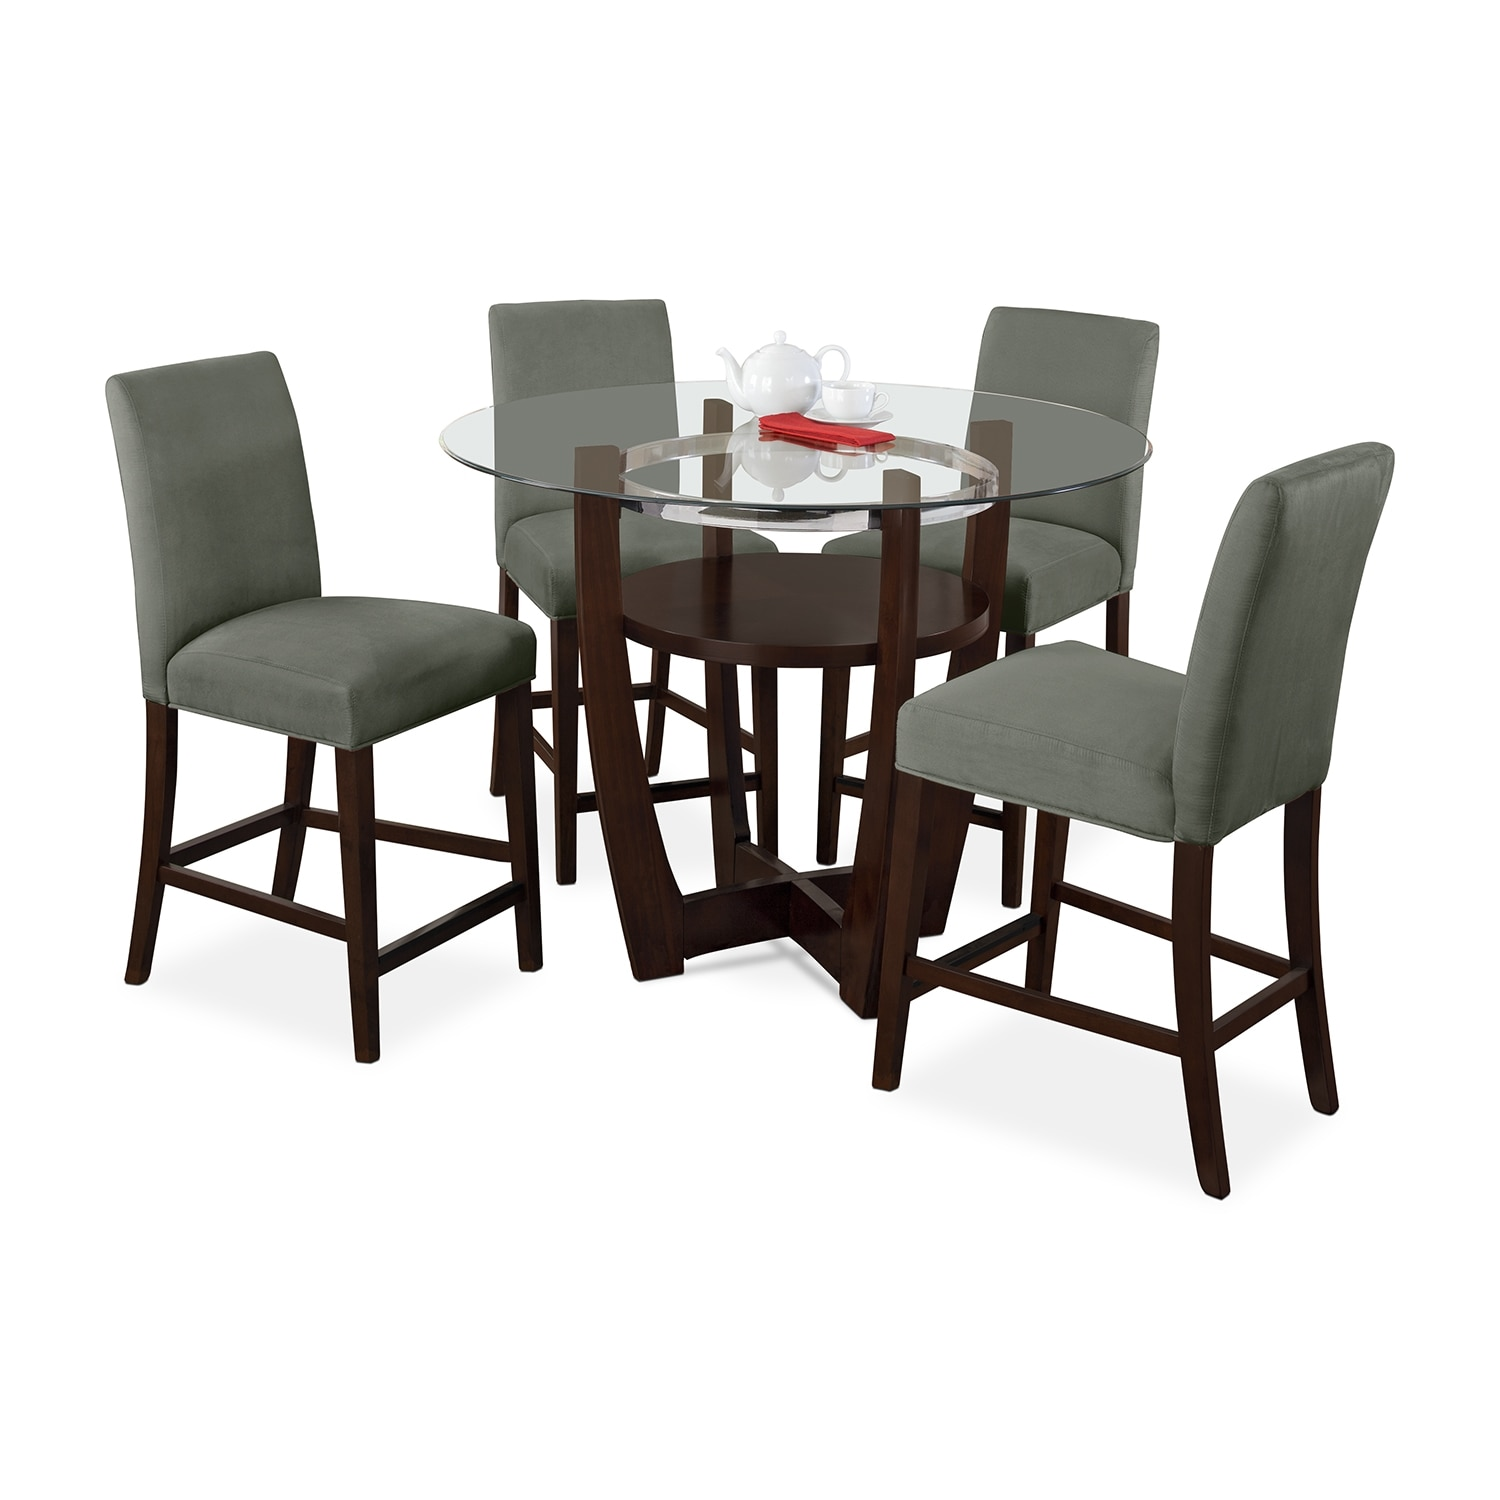 Alcove Counter-Height Dinette with Four Side Chairs - Sage